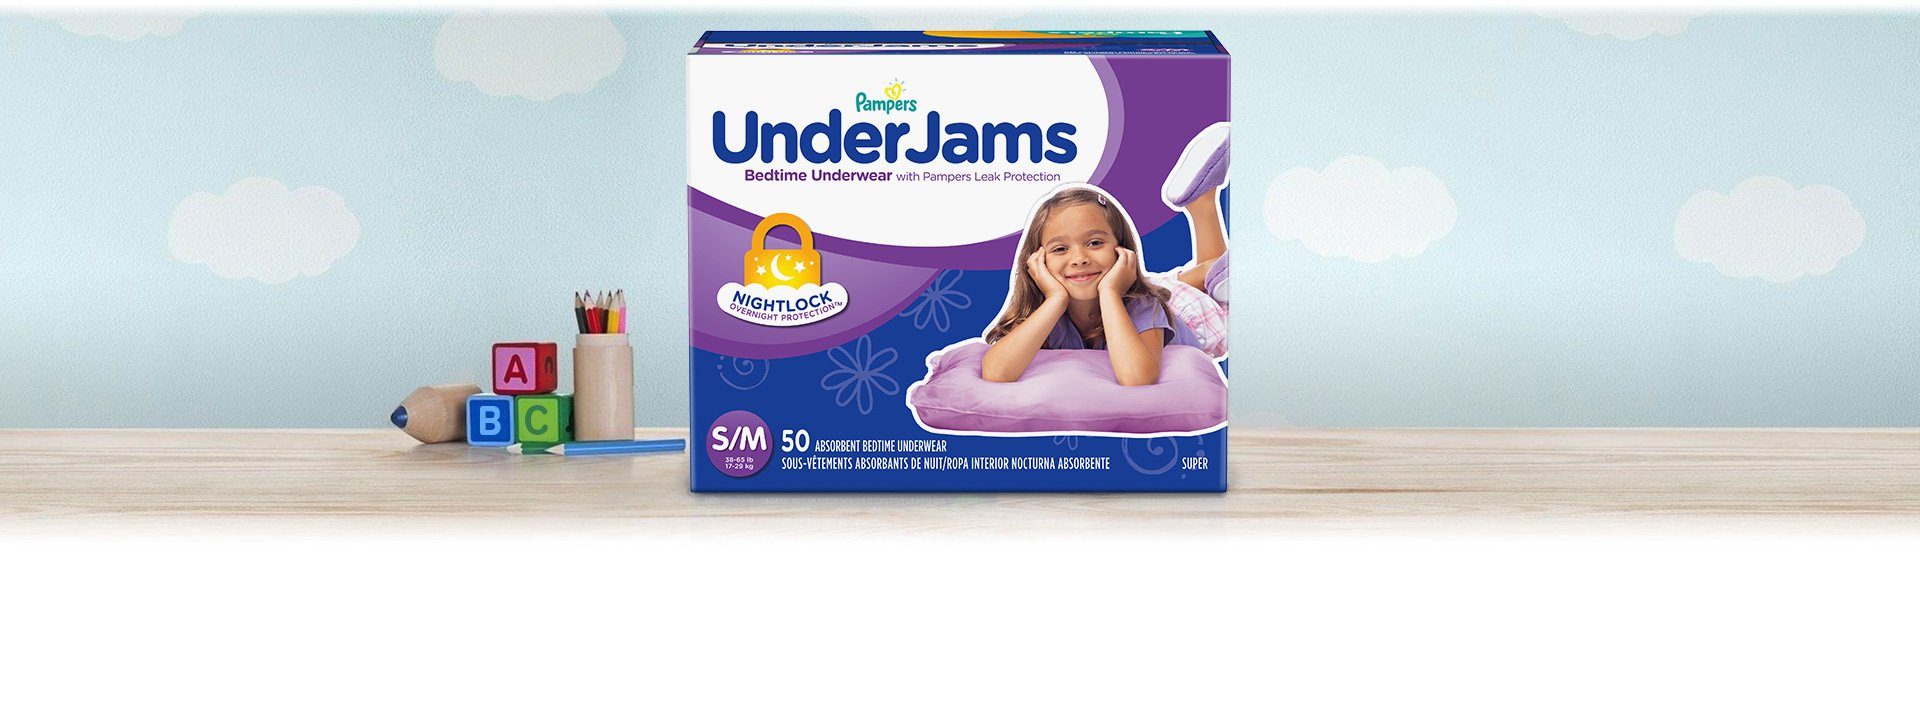 Amazon.com: Pampers UnderJams Disposable Bedtime Underwear for Girls Size S/M, 50 Count, SUPER: Health & Personal Care